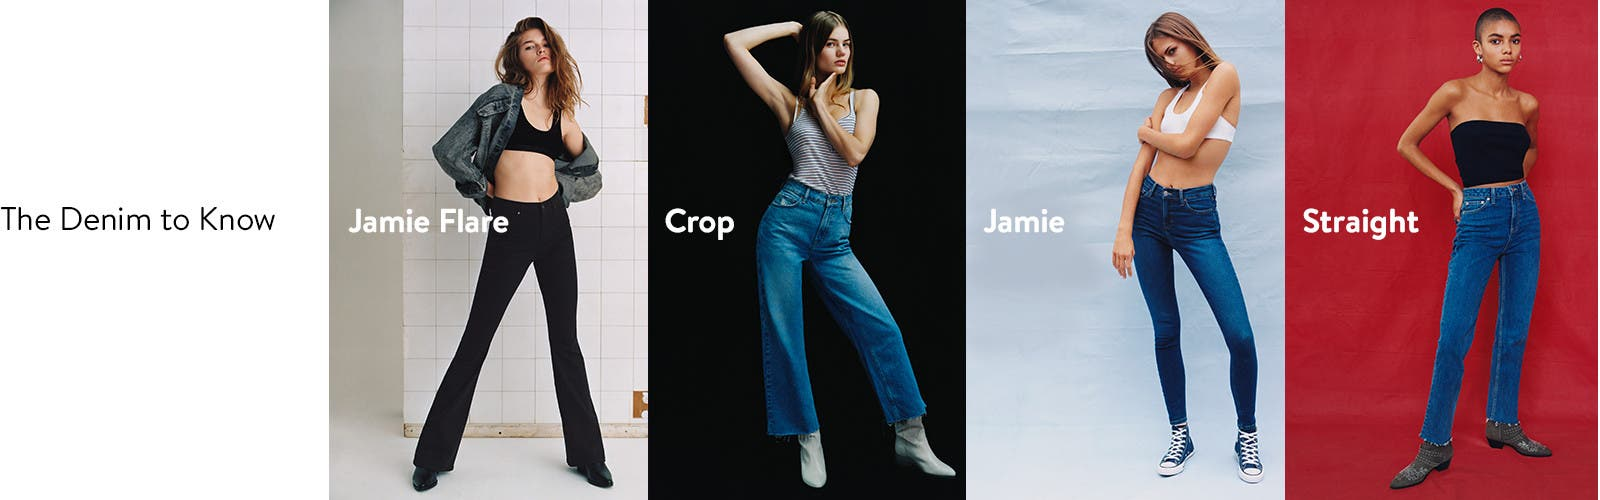 Topshop: the denim to know. / Topshop Jamie Flare jeans. / Topshop crop jeans. / Topshop Jamie skinny jeans. / Topshop straight-leg jeans.